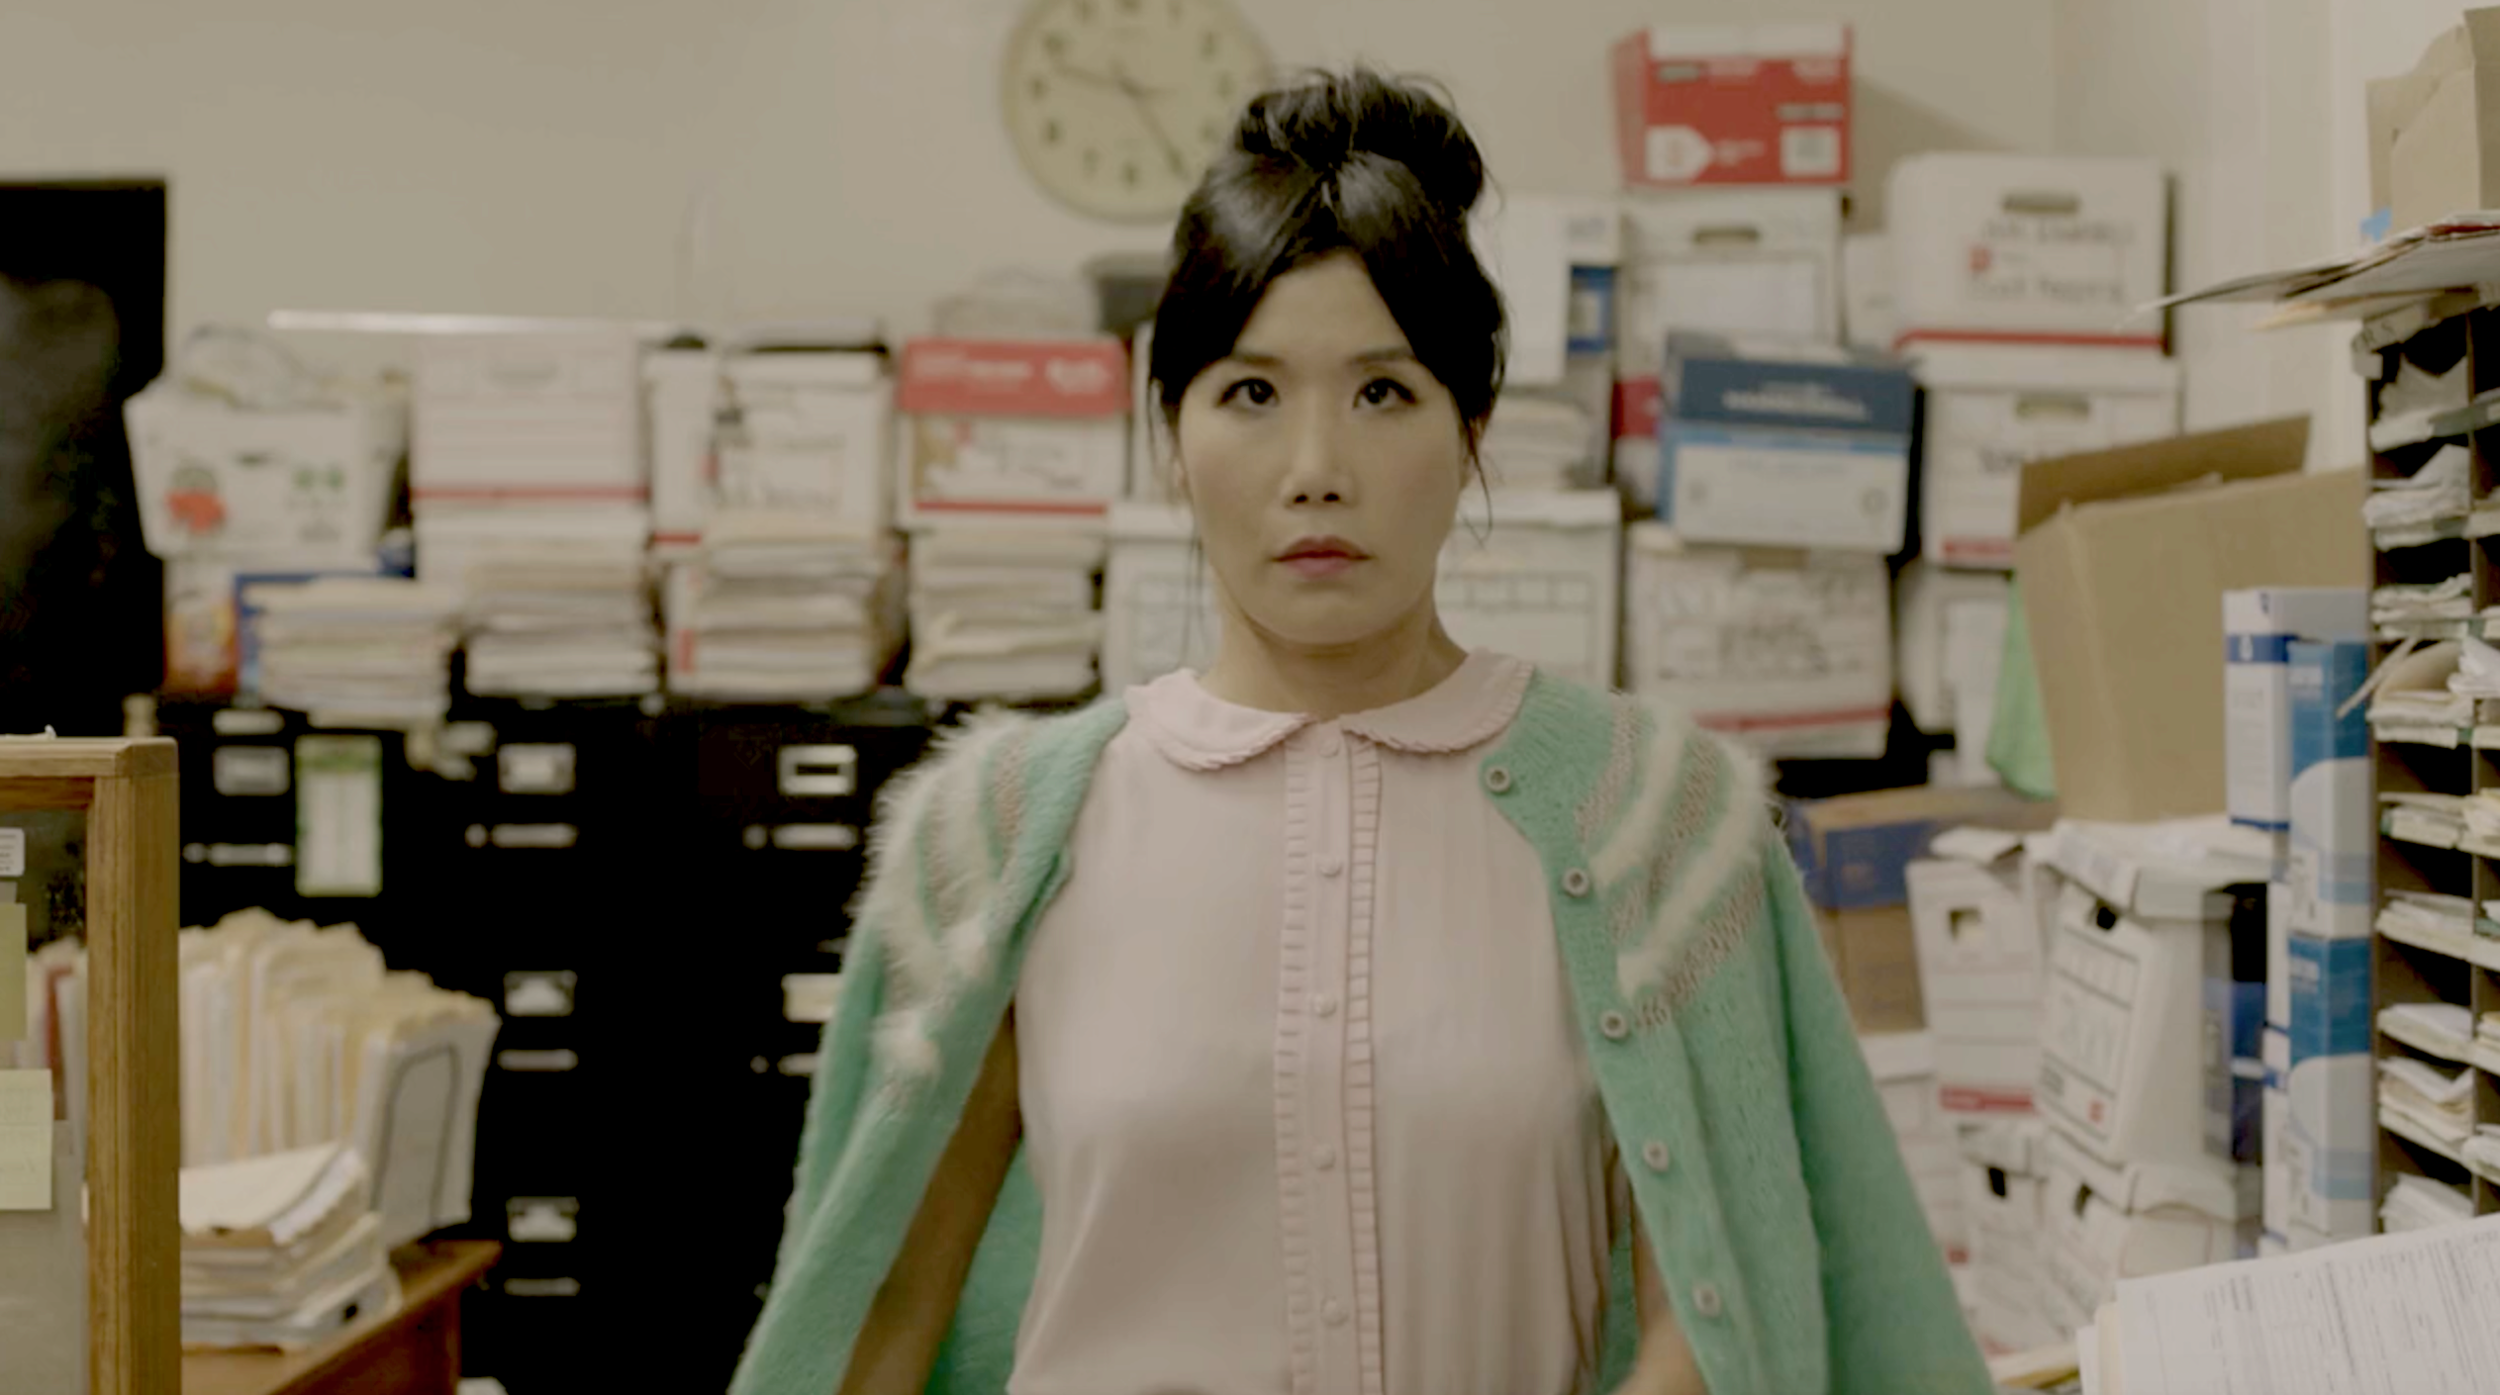 vivian bang as office girl -